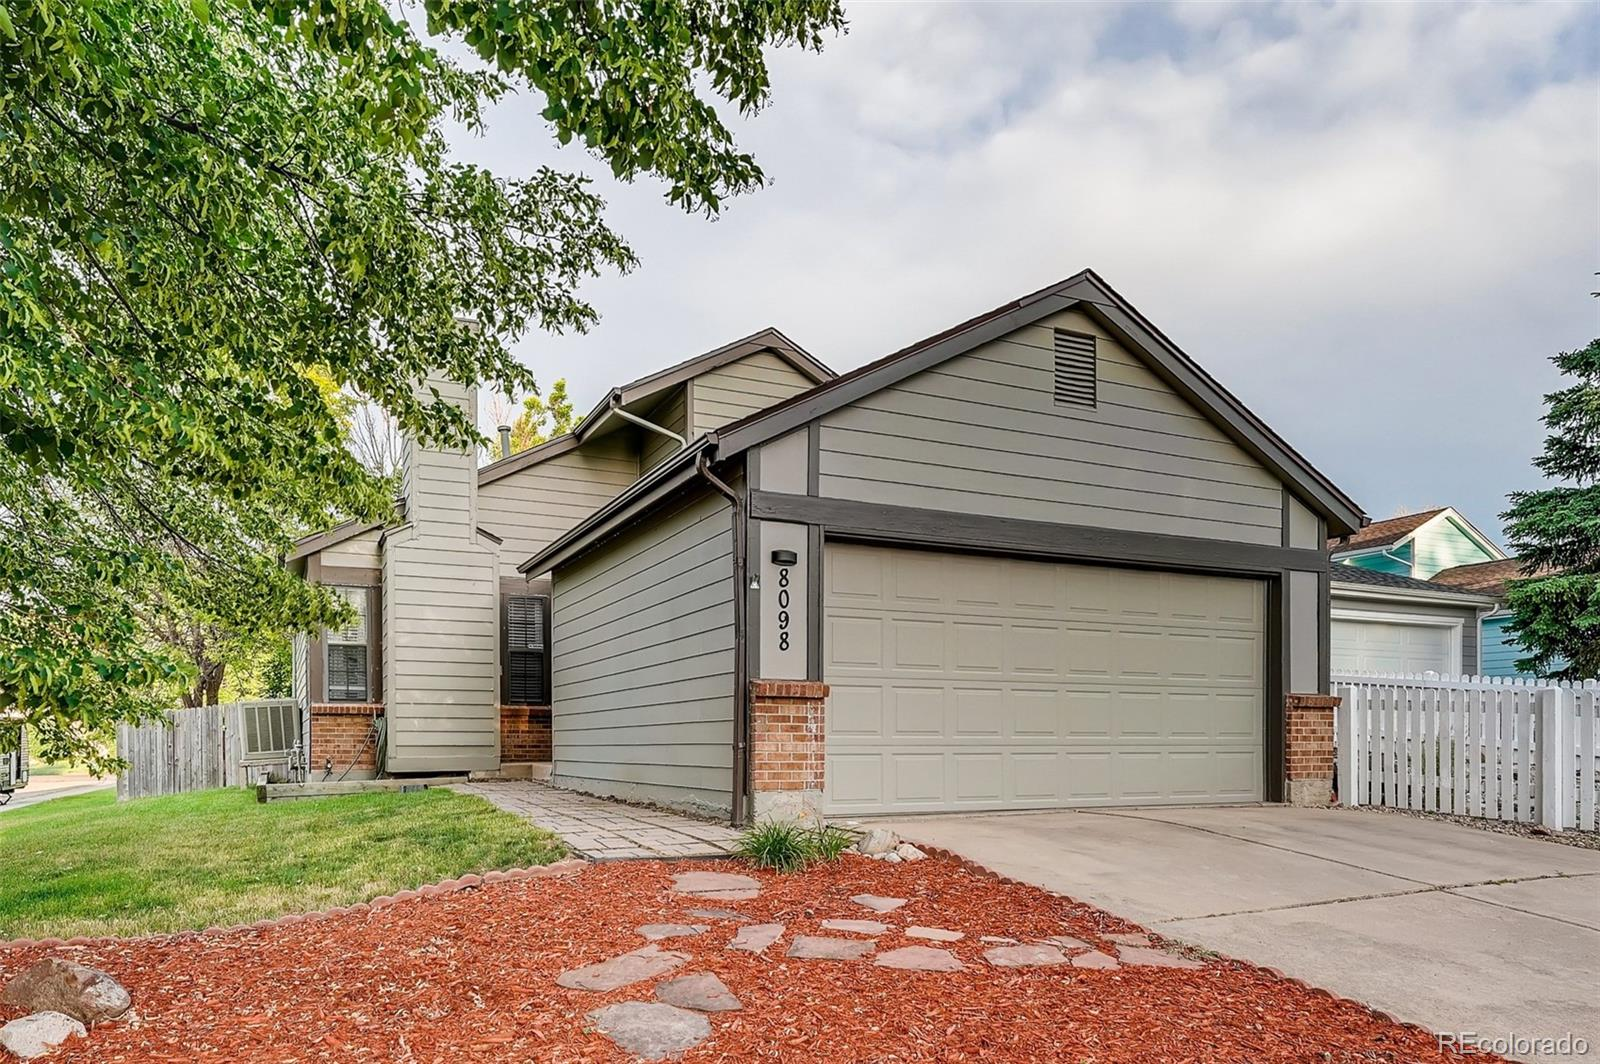 MLS# 7382270 - 1 - 8098 Miller Circle, Arvada, CO 80005